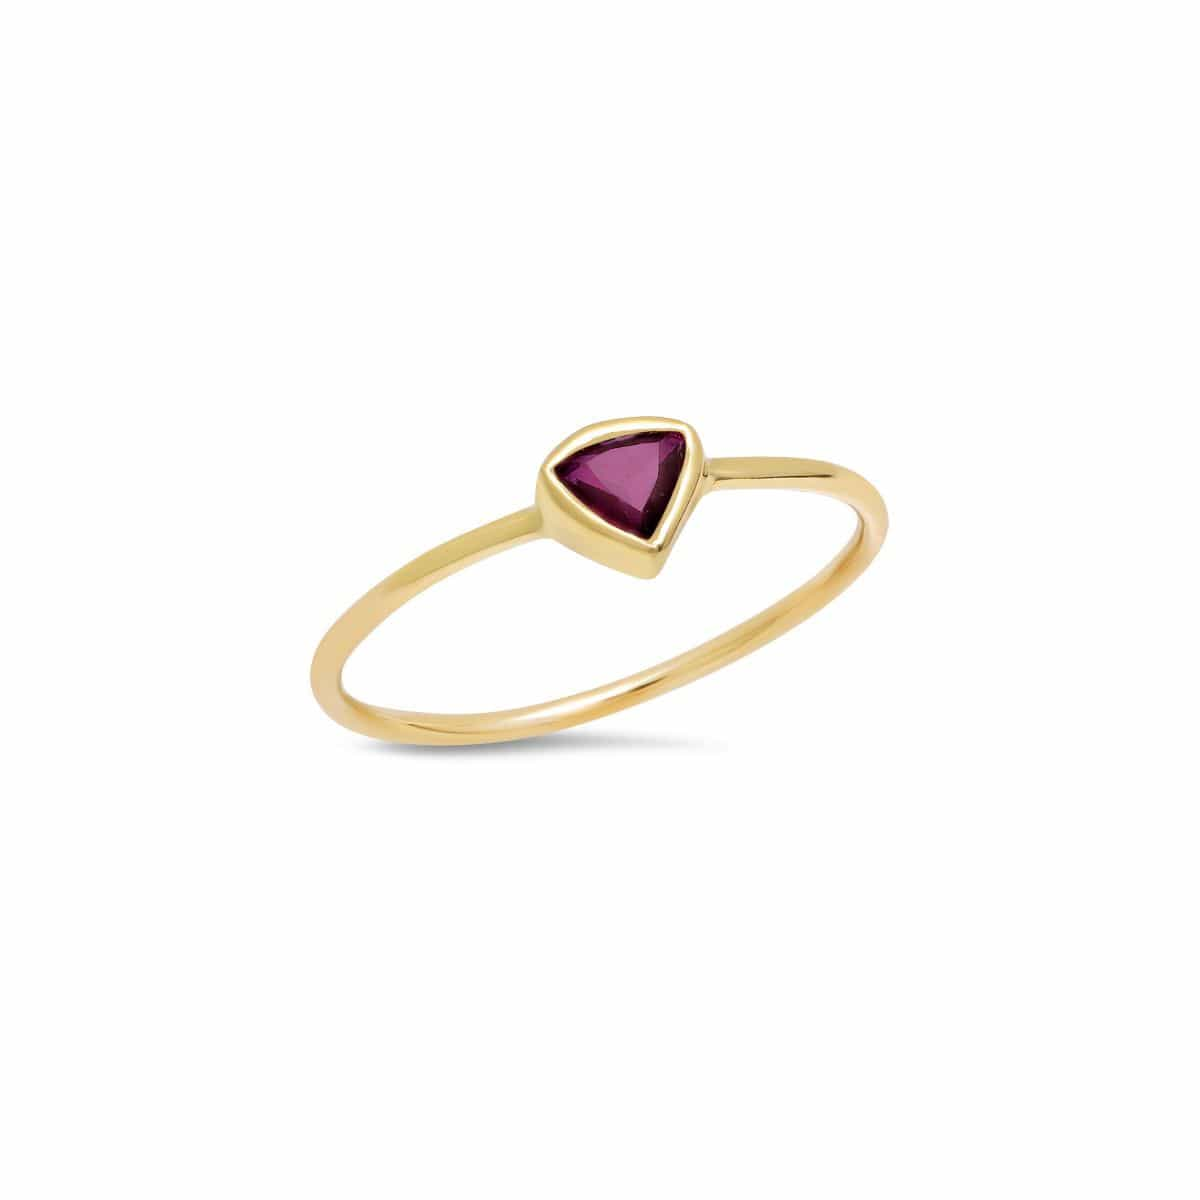 Dark Pink Tourmaline Trillion Cut Yellow Gold Ring Caitlin Nicole Curated Los Angeles